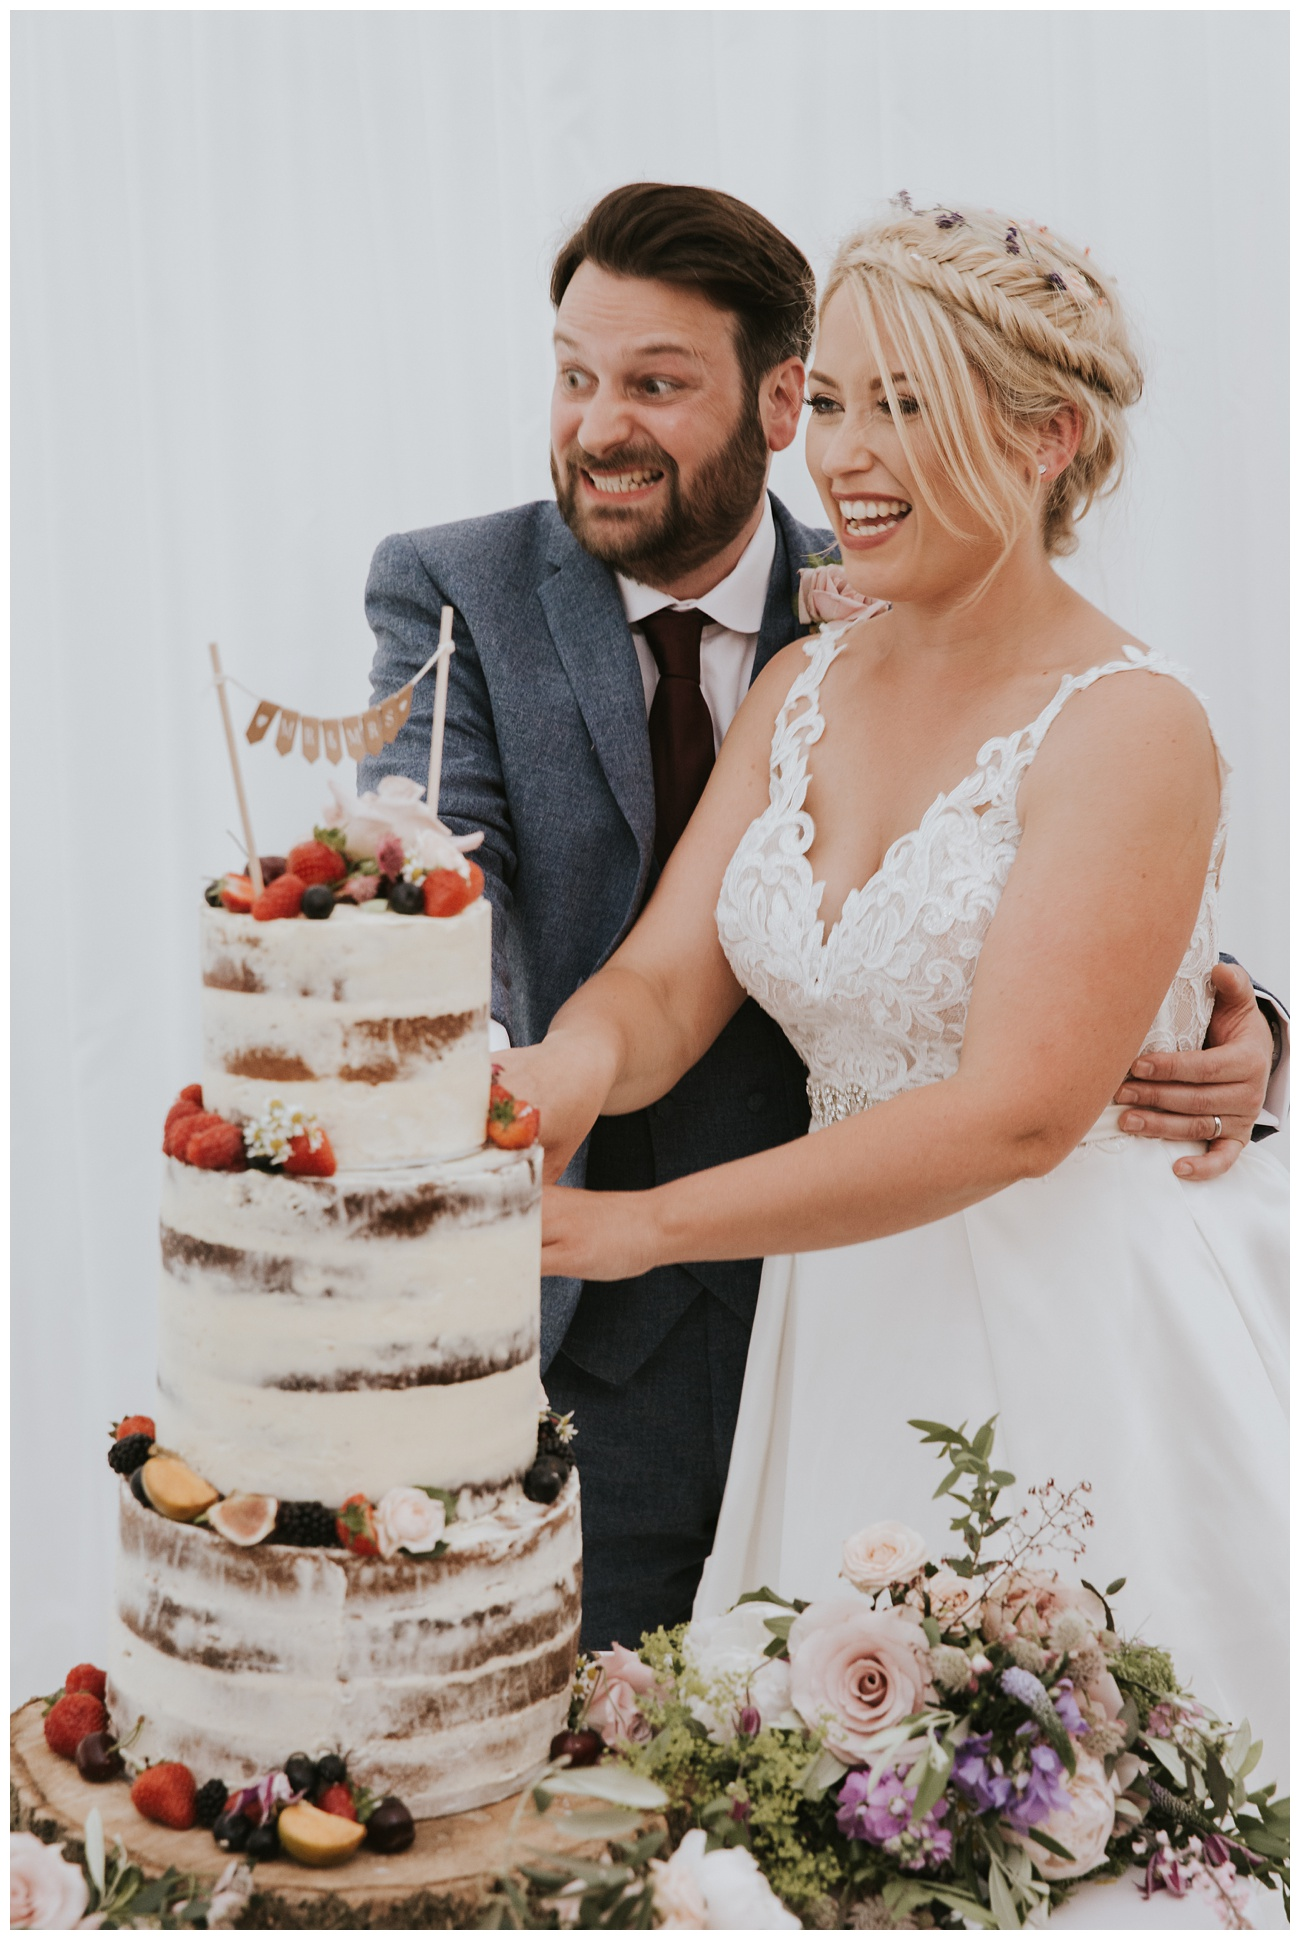 The bride and groom find it funny when they cut their wedding cake